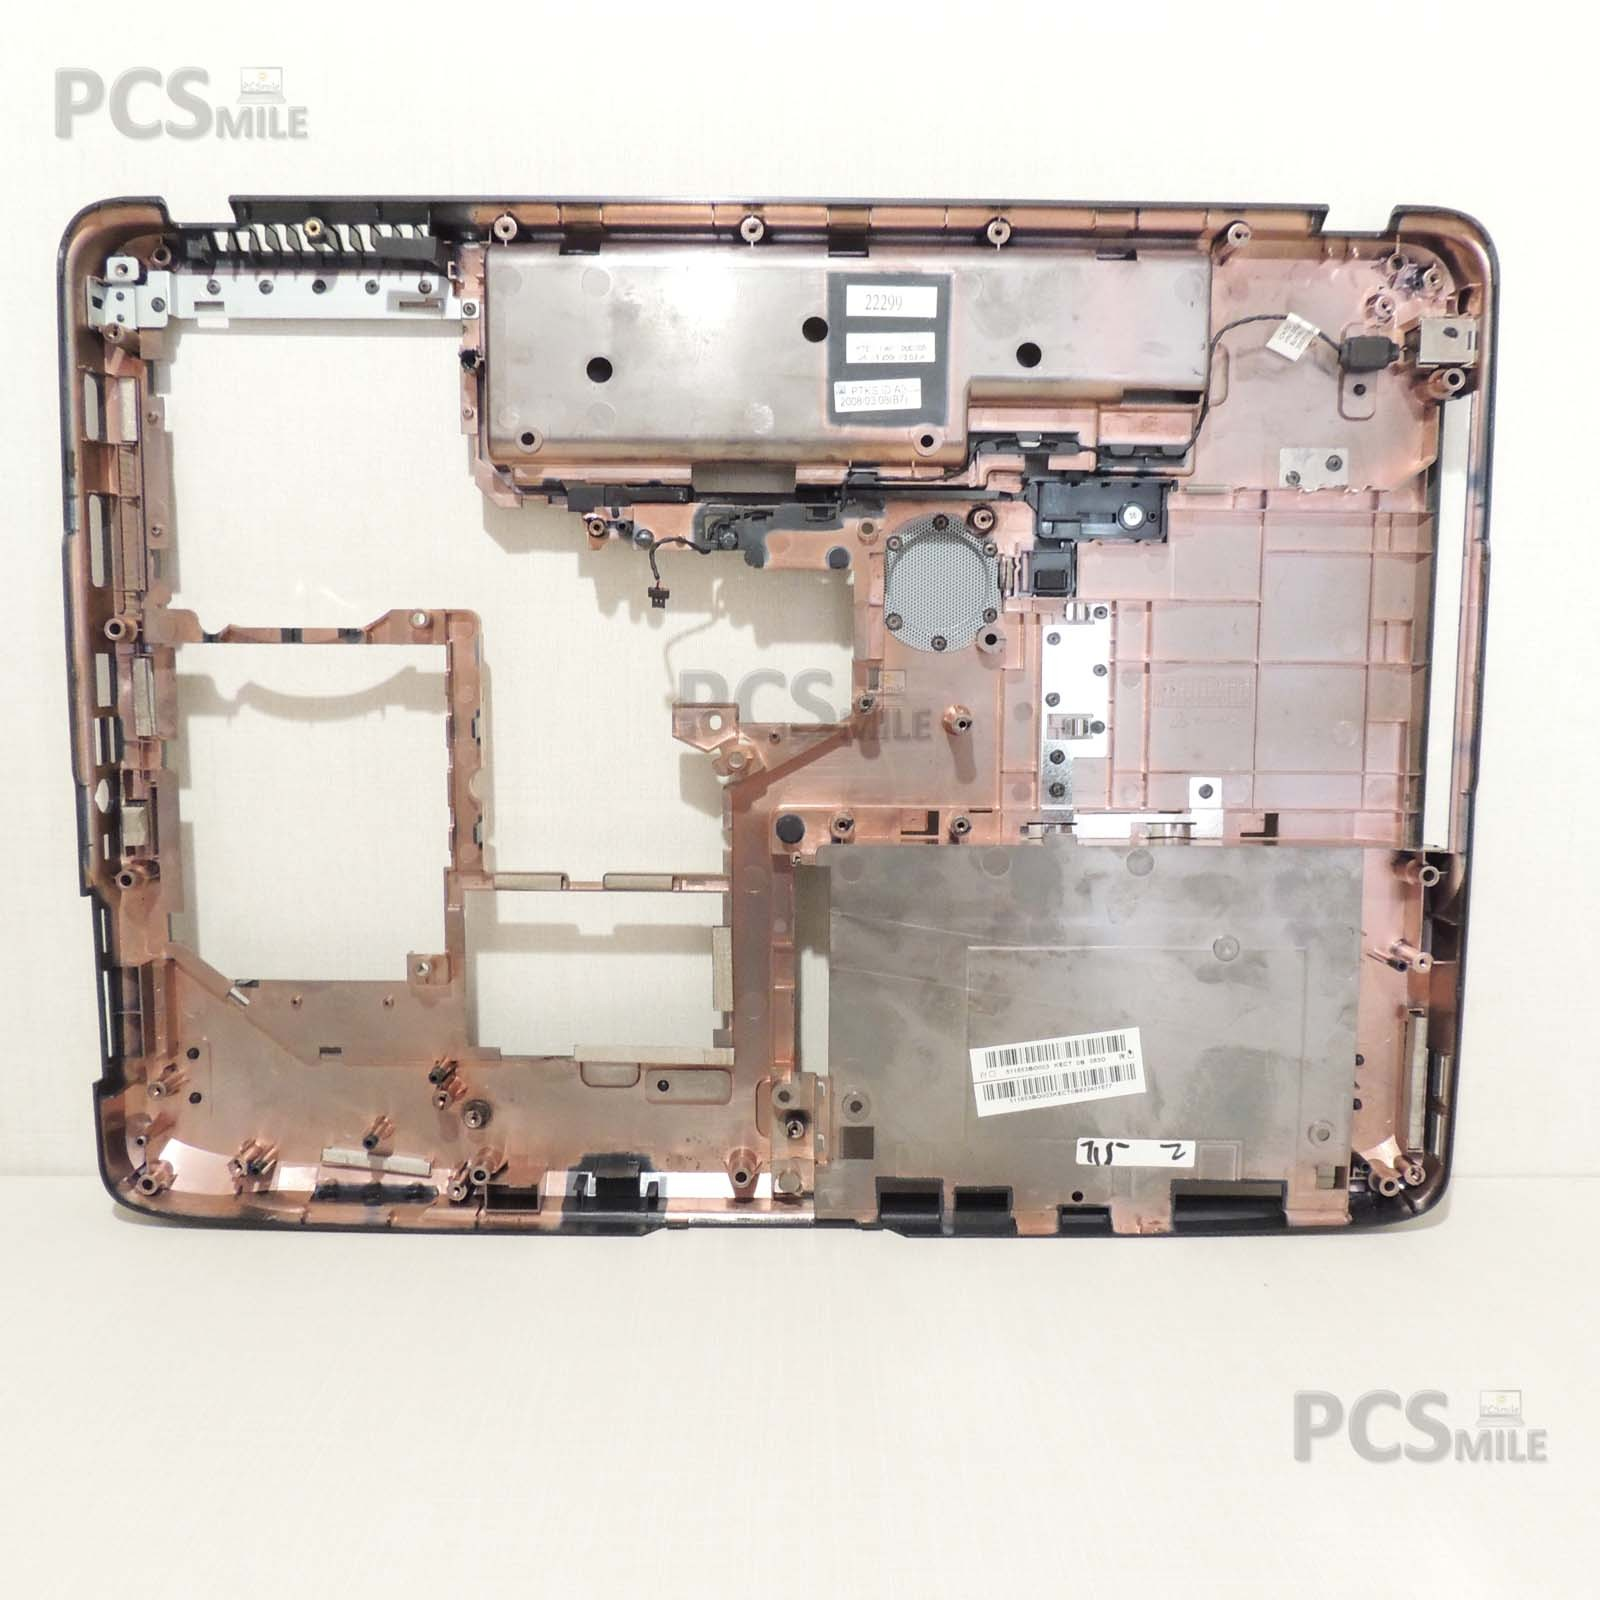 Scocca posteriore Acer Aspire 7520 ICY70 Series 511653BO003KECT0B083O